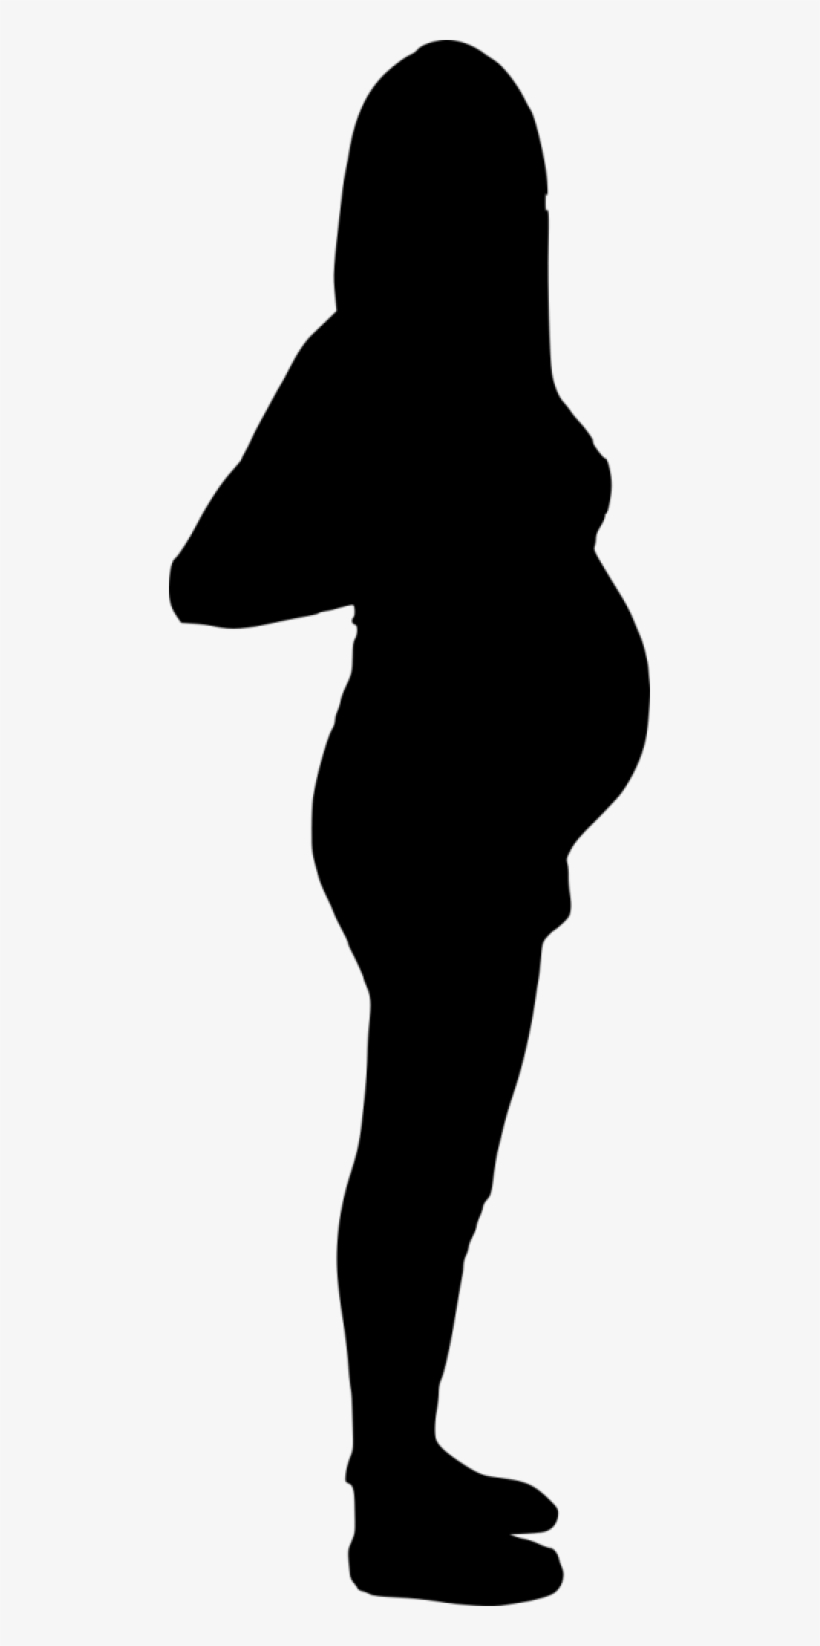 Free Png Pregnant Woman Silhouette Png Images Transparent - Pregnant Woman Silhouette Png, transparent png #539778